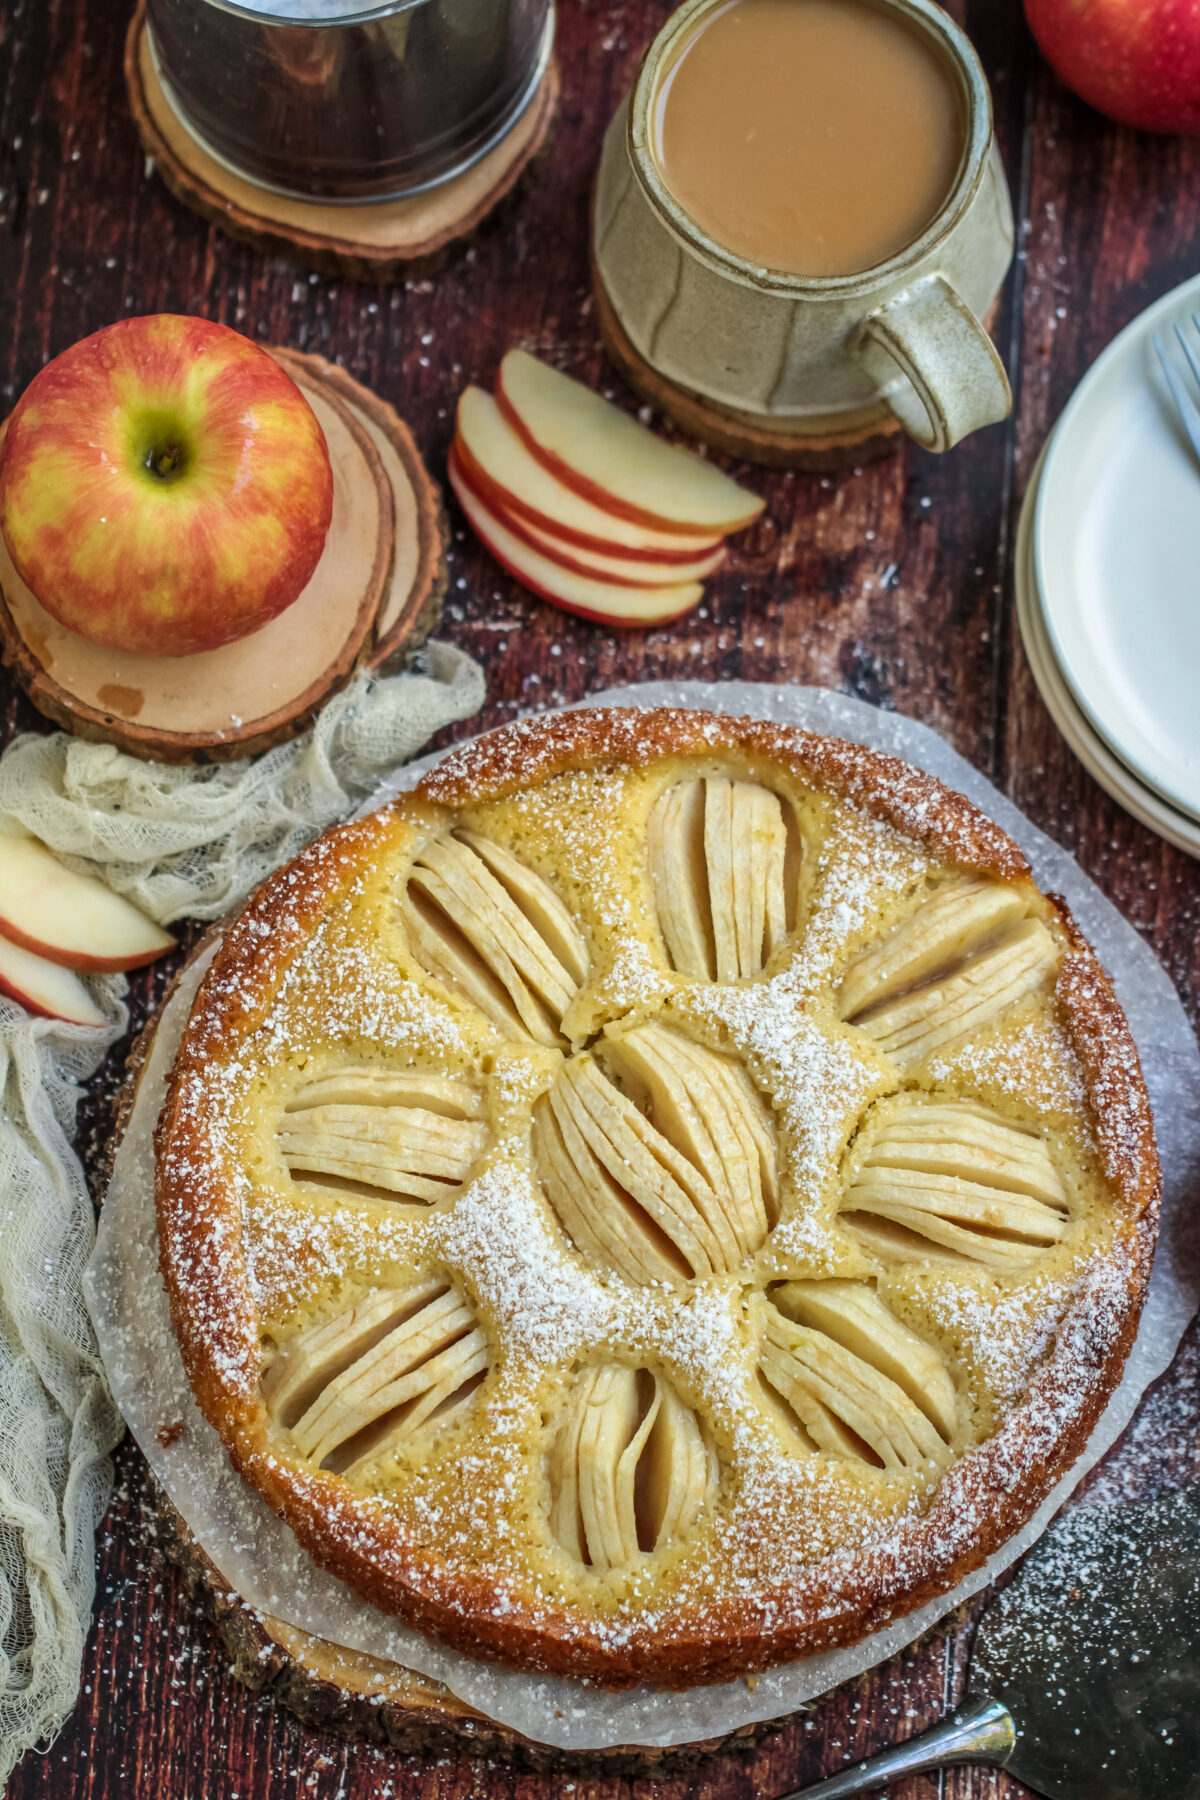 Classic German apple cake, Apfelkuchen, is moist and buttery. It's a simple and rustic cake made with fresh apples - a perfect fall dessert.